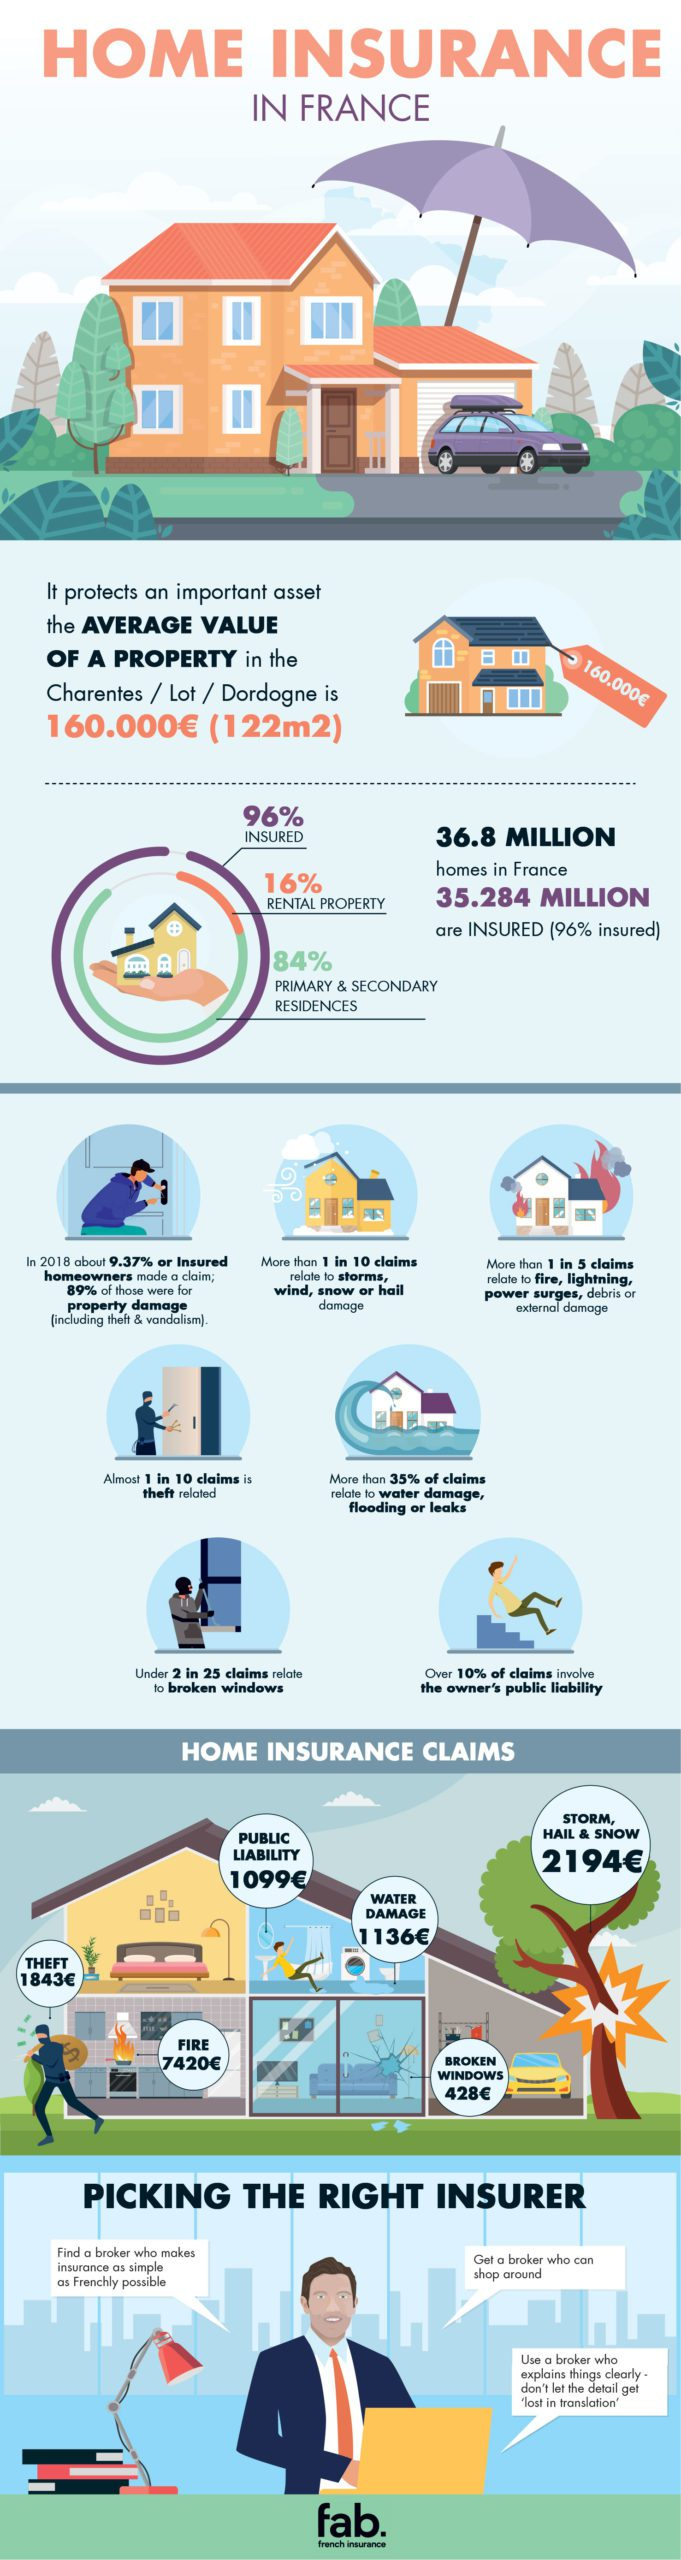 Infographic home insurance in France